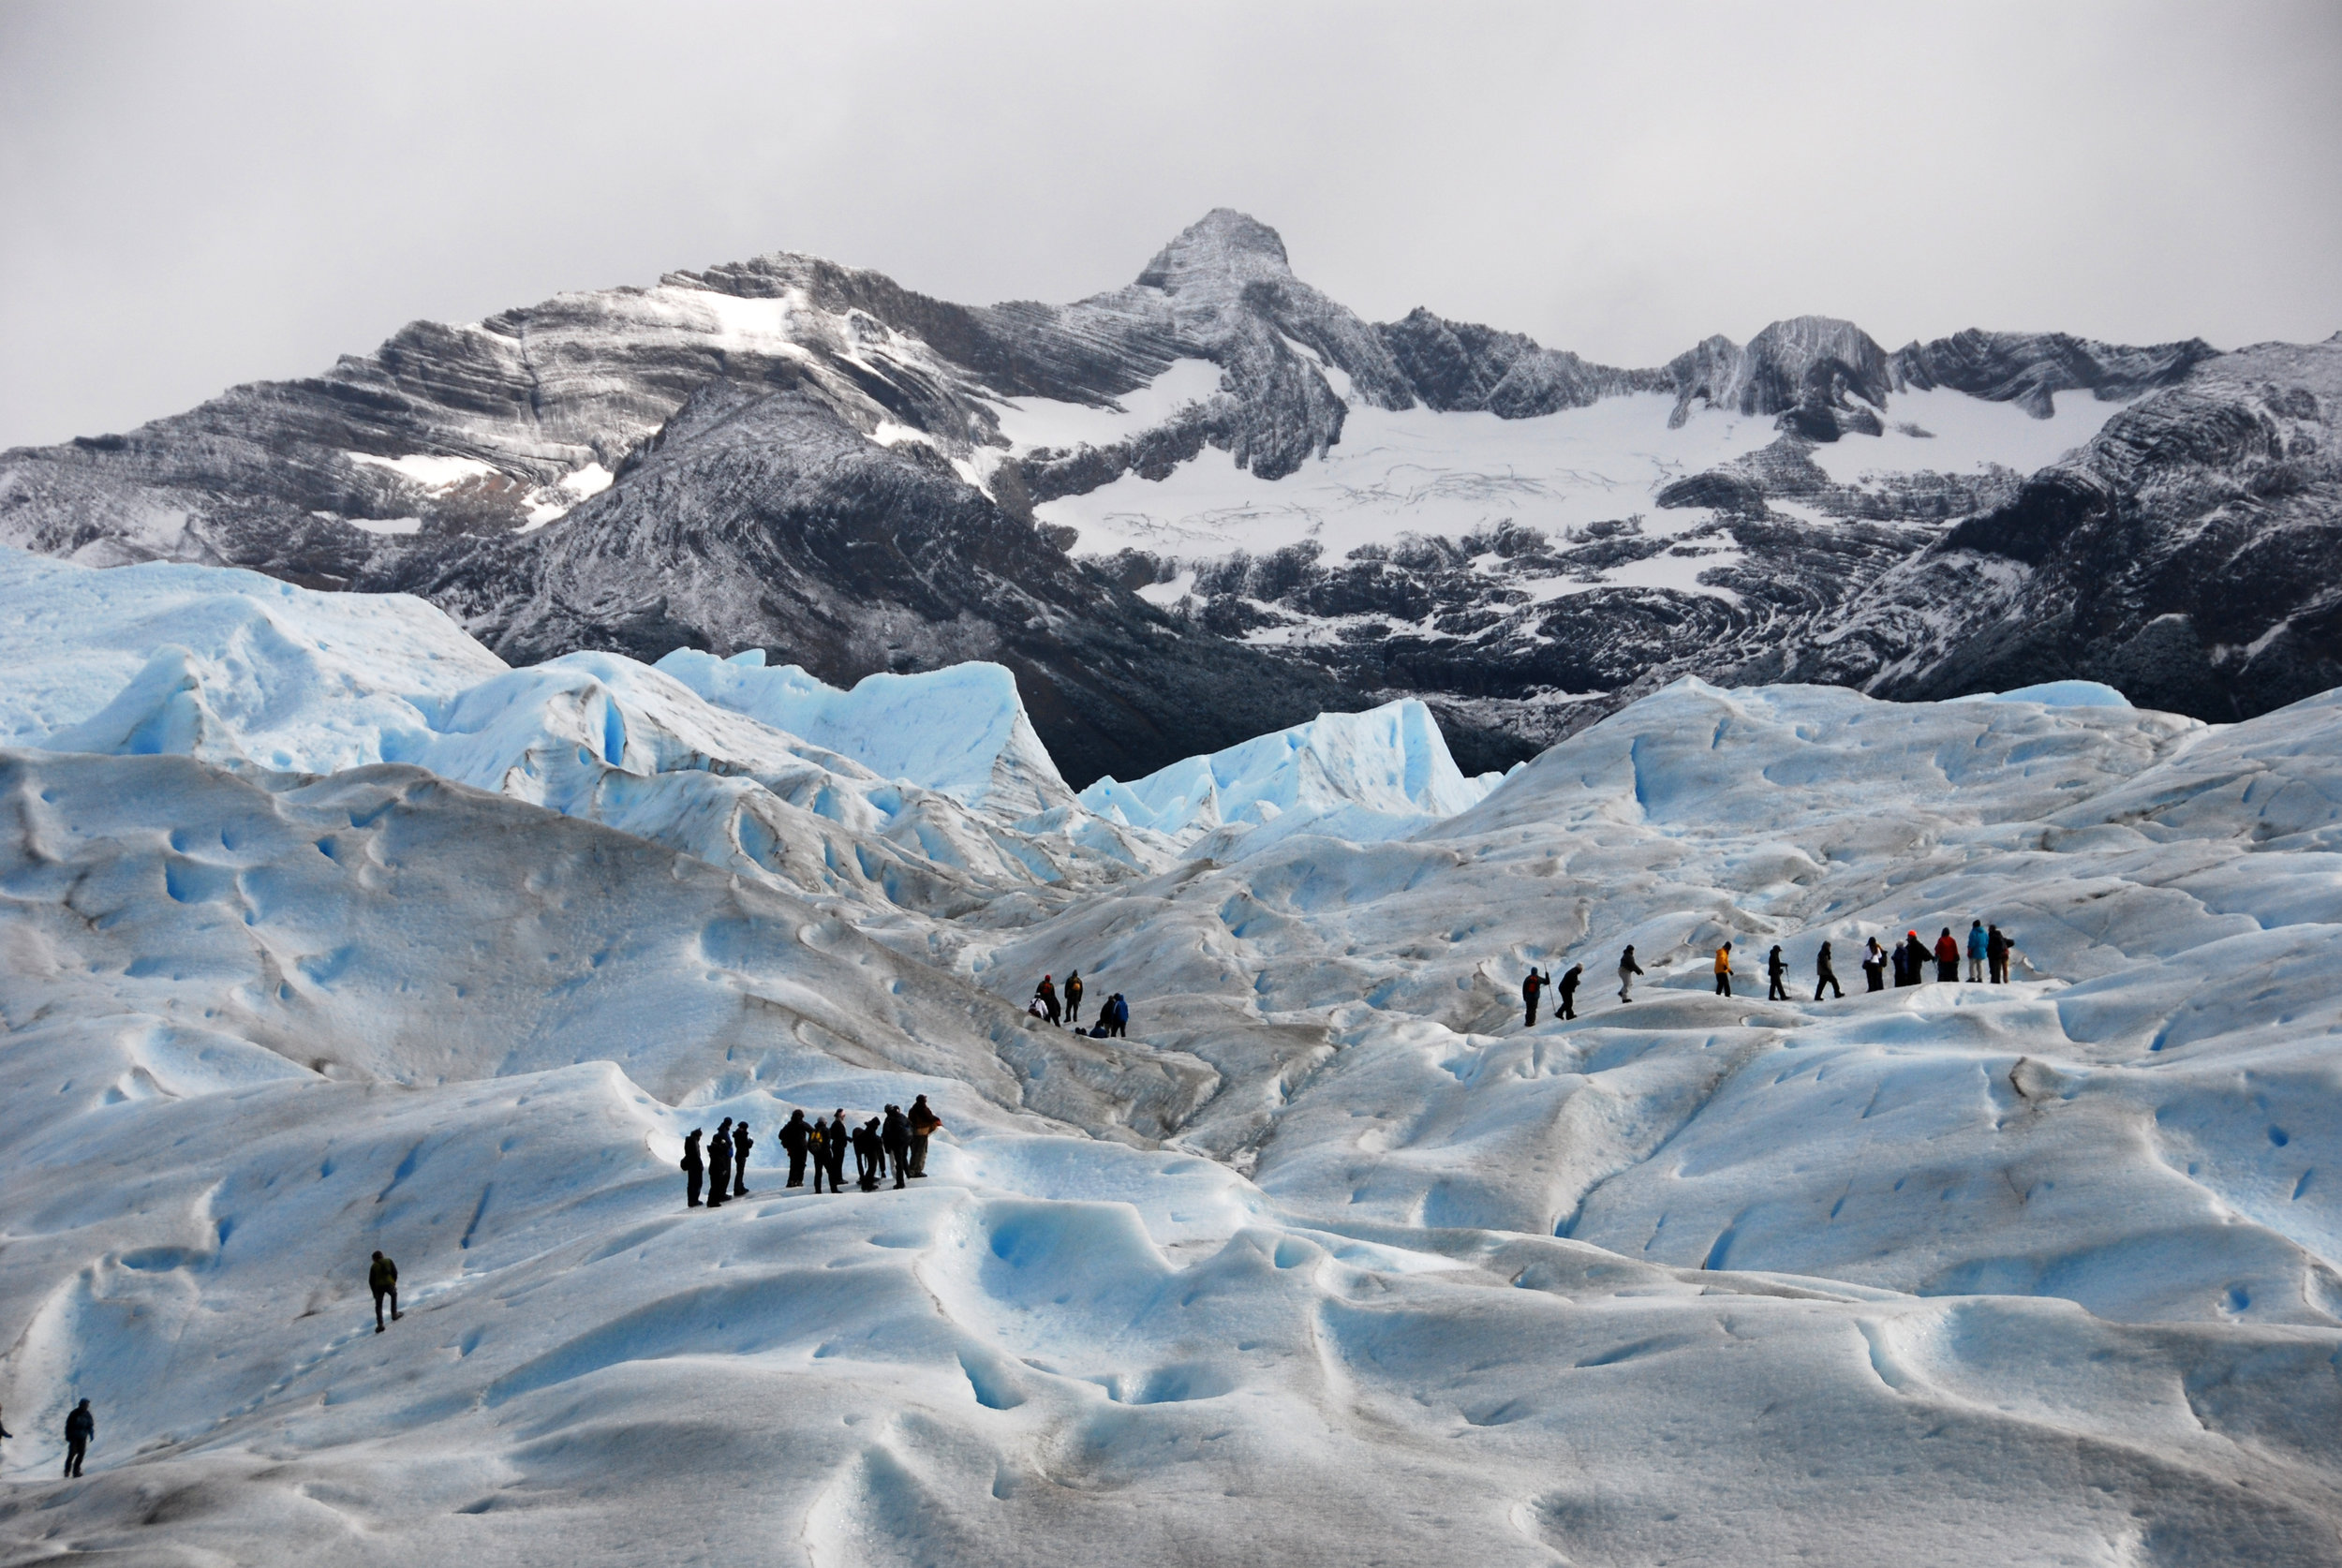 PICTURED:  Hikers on Perito Merino Glacier - Big Ice tour, Glaciers National Park, El Calafate, Argentina